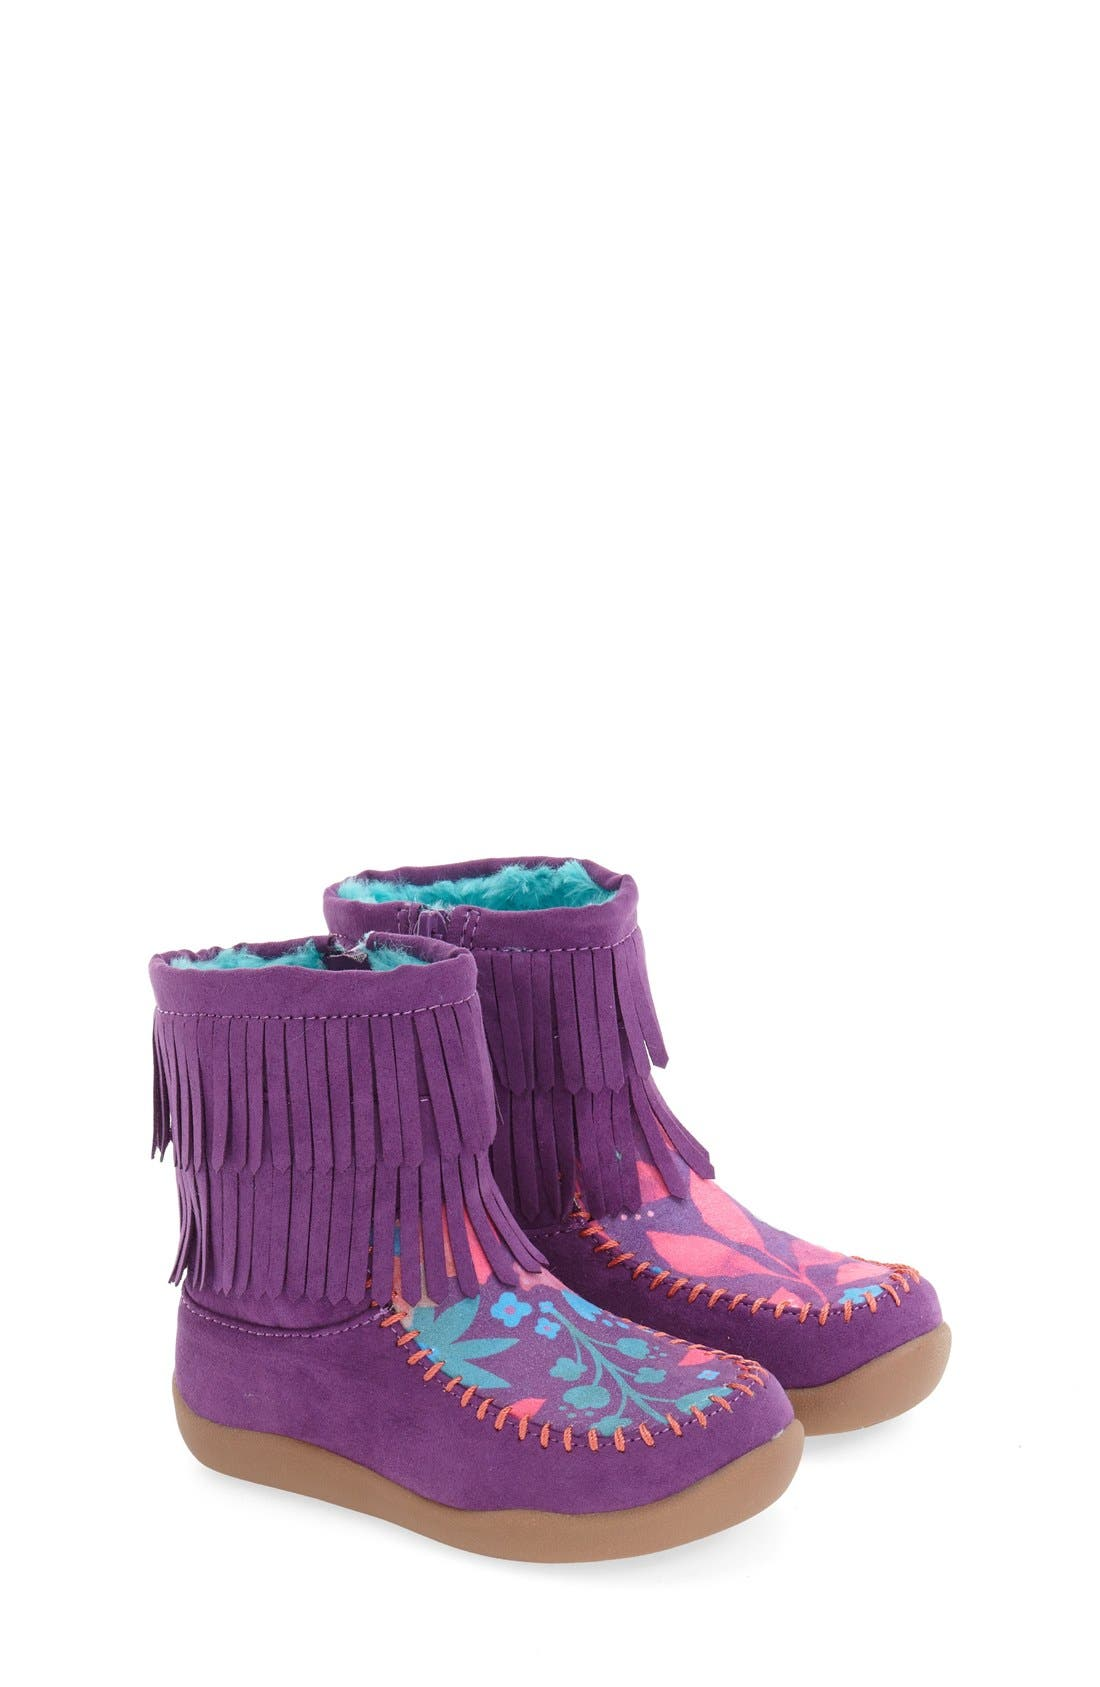 CHOOZE Fringe Bootie (Toddler, Little Kid & Big Kid)